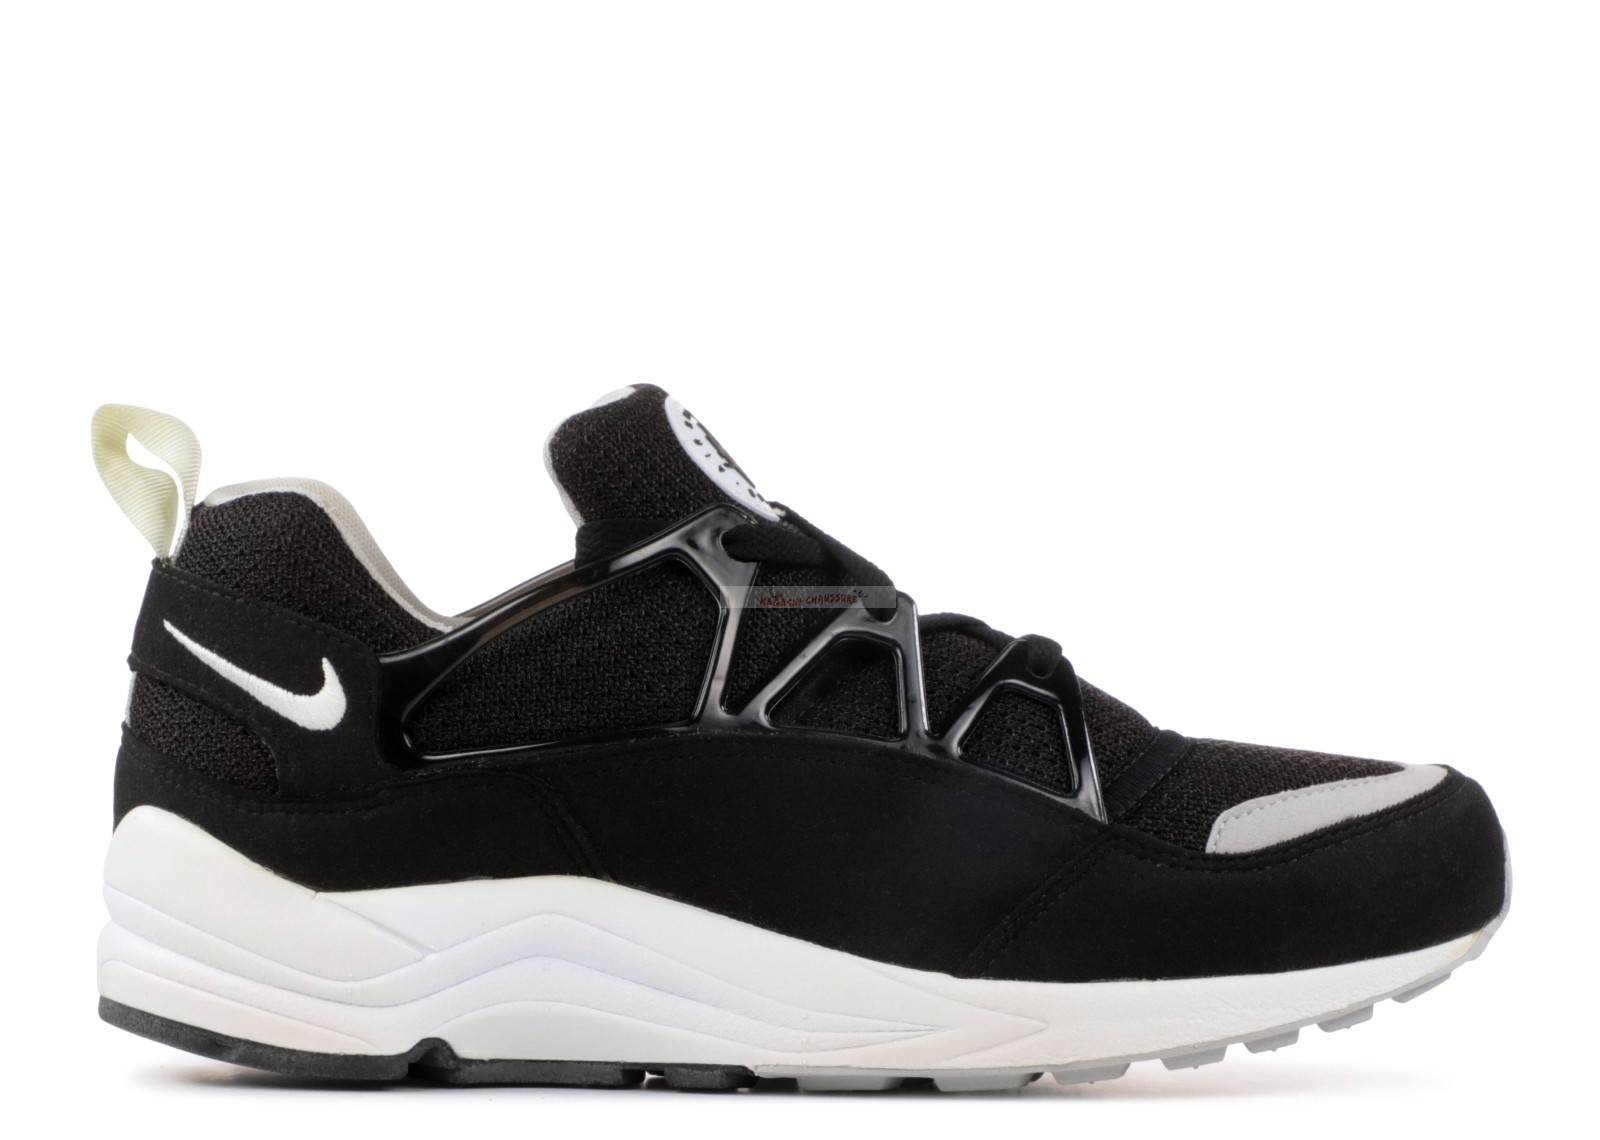 "Nike Air Huarache Light ""Beams"" Noir Gris (306127-011) Chaussure de Basket"